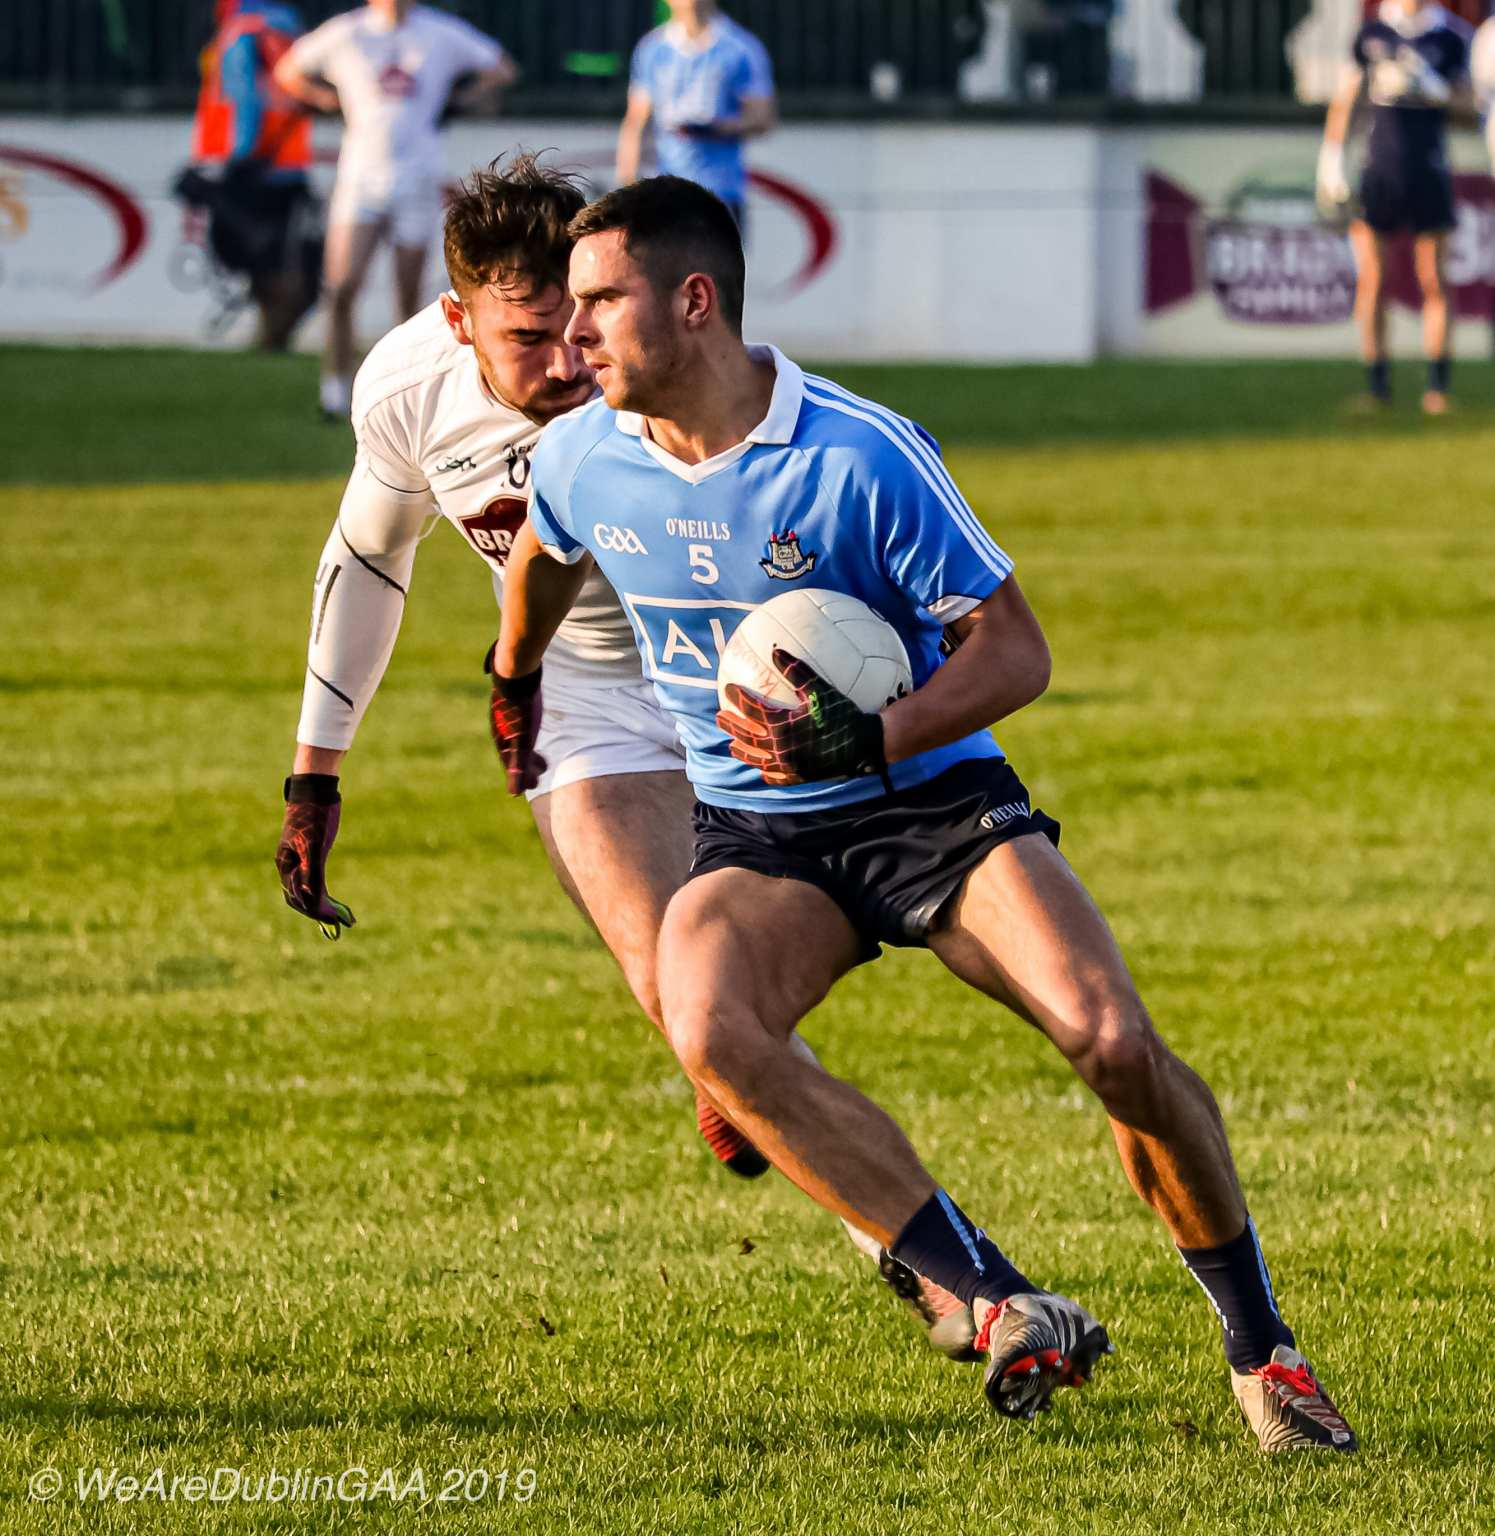 Dublin footballer Niall Scully in action against Kildare who Dublin face in the 2019 Leinster SFC Semi Final, Kildare manager Cian O'Neill insists his side are heading to Croke Park to win.